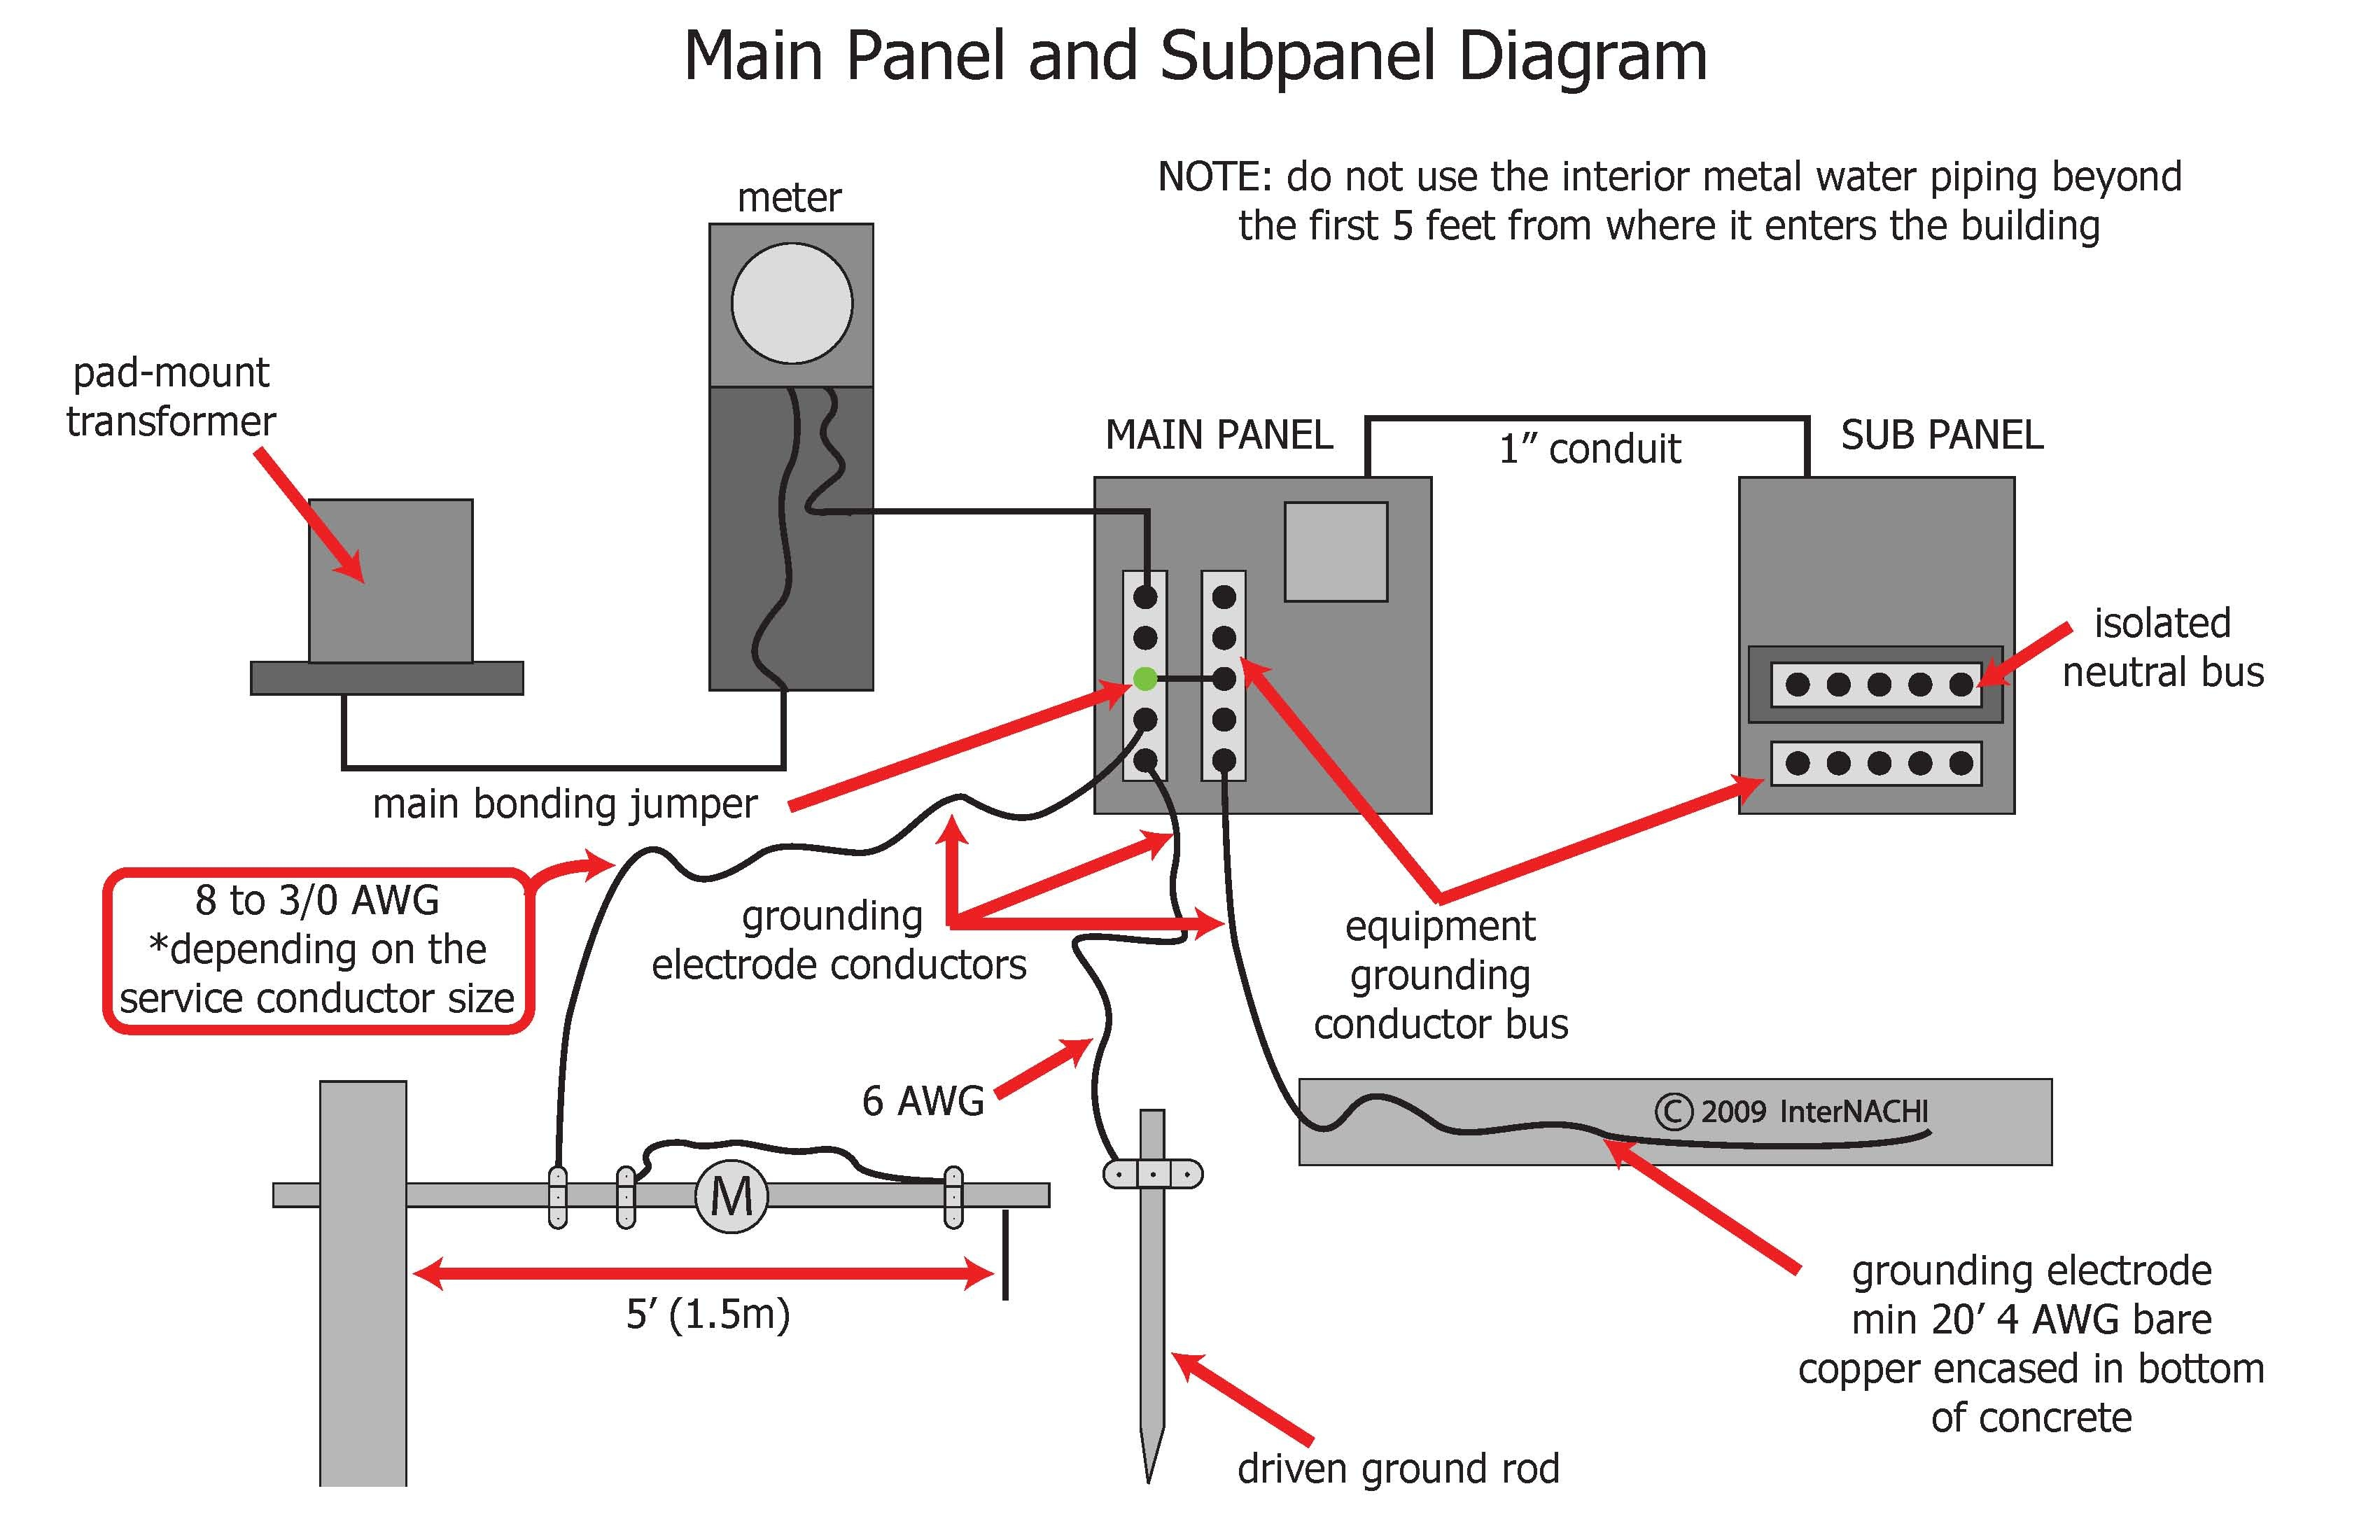 main panel diagram internachi inspection graphics library electrical service main